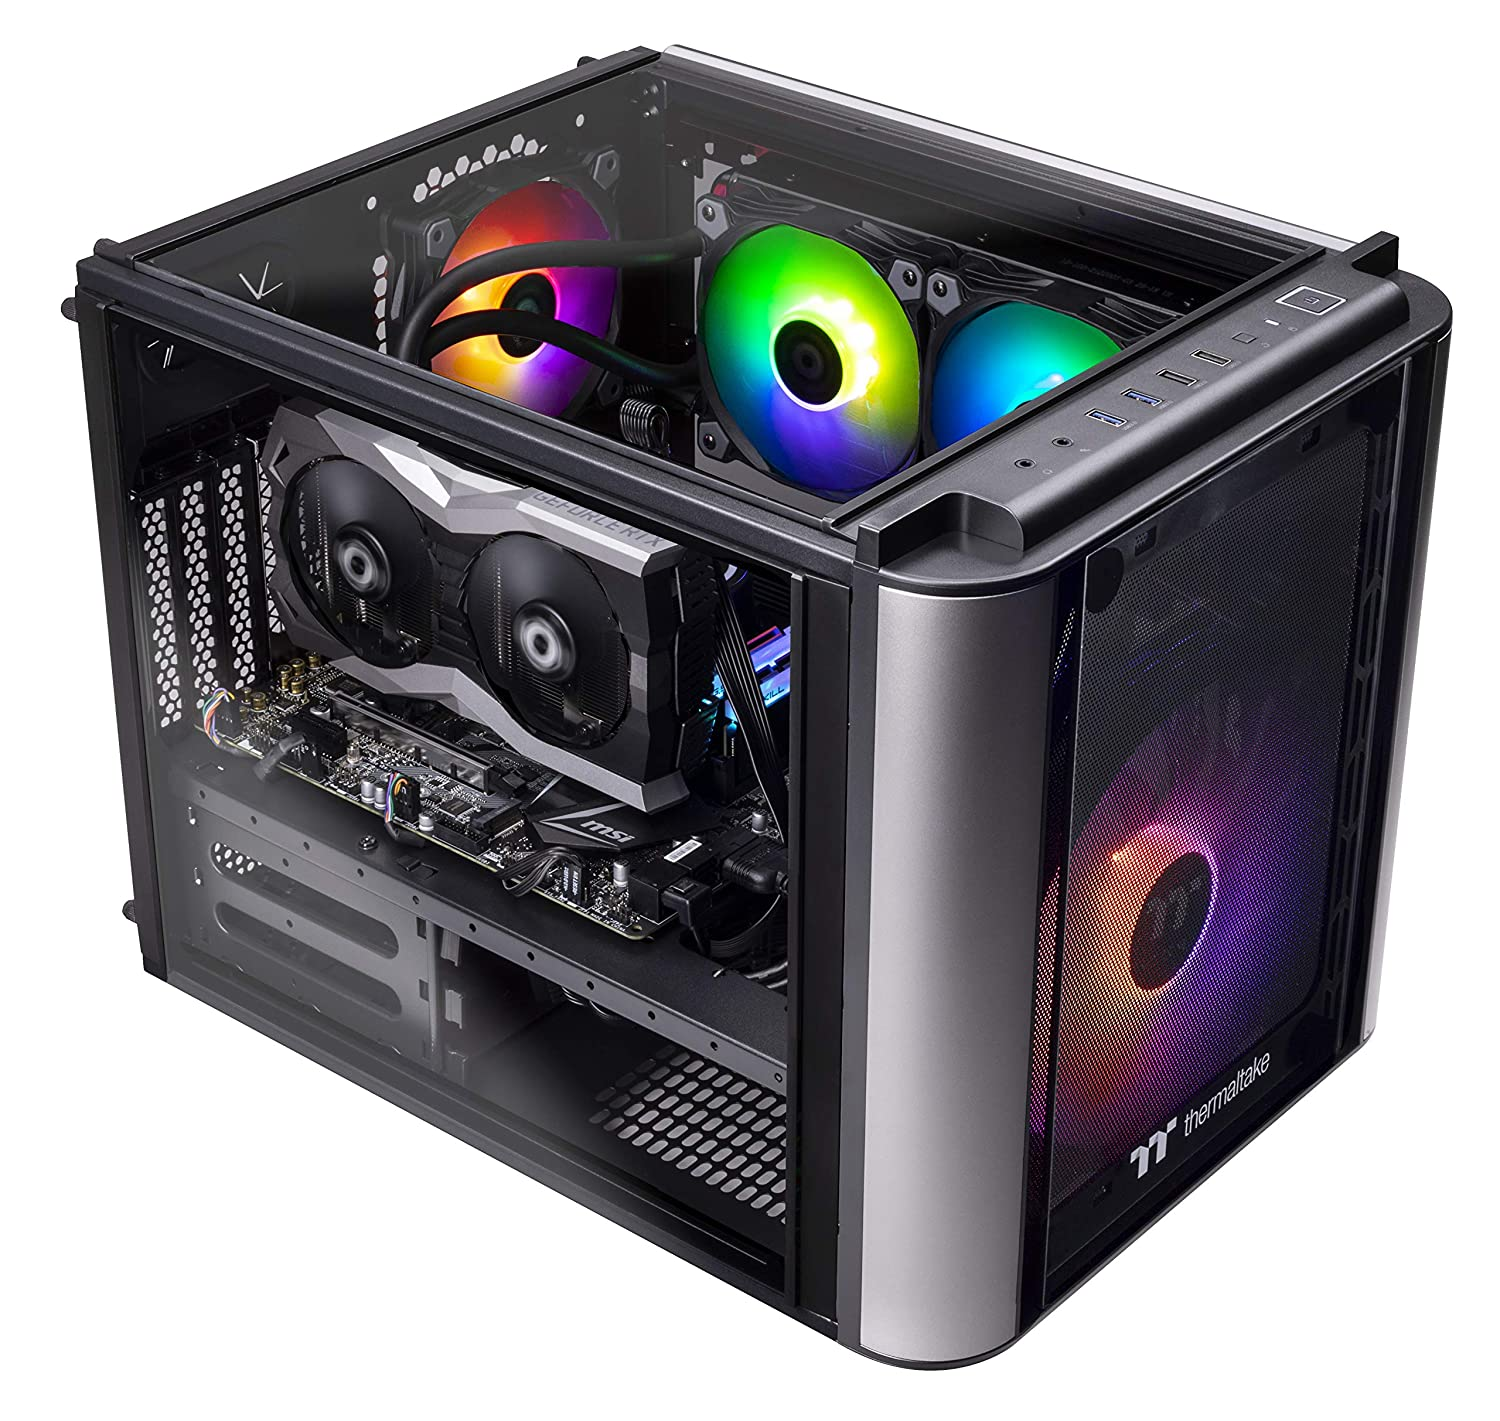 Thermaltake Level 20 AVT-01 Closed Loop Liquid Cooled CPU Gaming PC, Intel i5-9600k 3.7GHz, 16GB GSKill RGB, NVIDIA RTX 2060 6GB, Evo Plus M.2 500GB, 500GB SSD, WiFi, Win 10 Pro. L2VT-Z390-P19-LGS